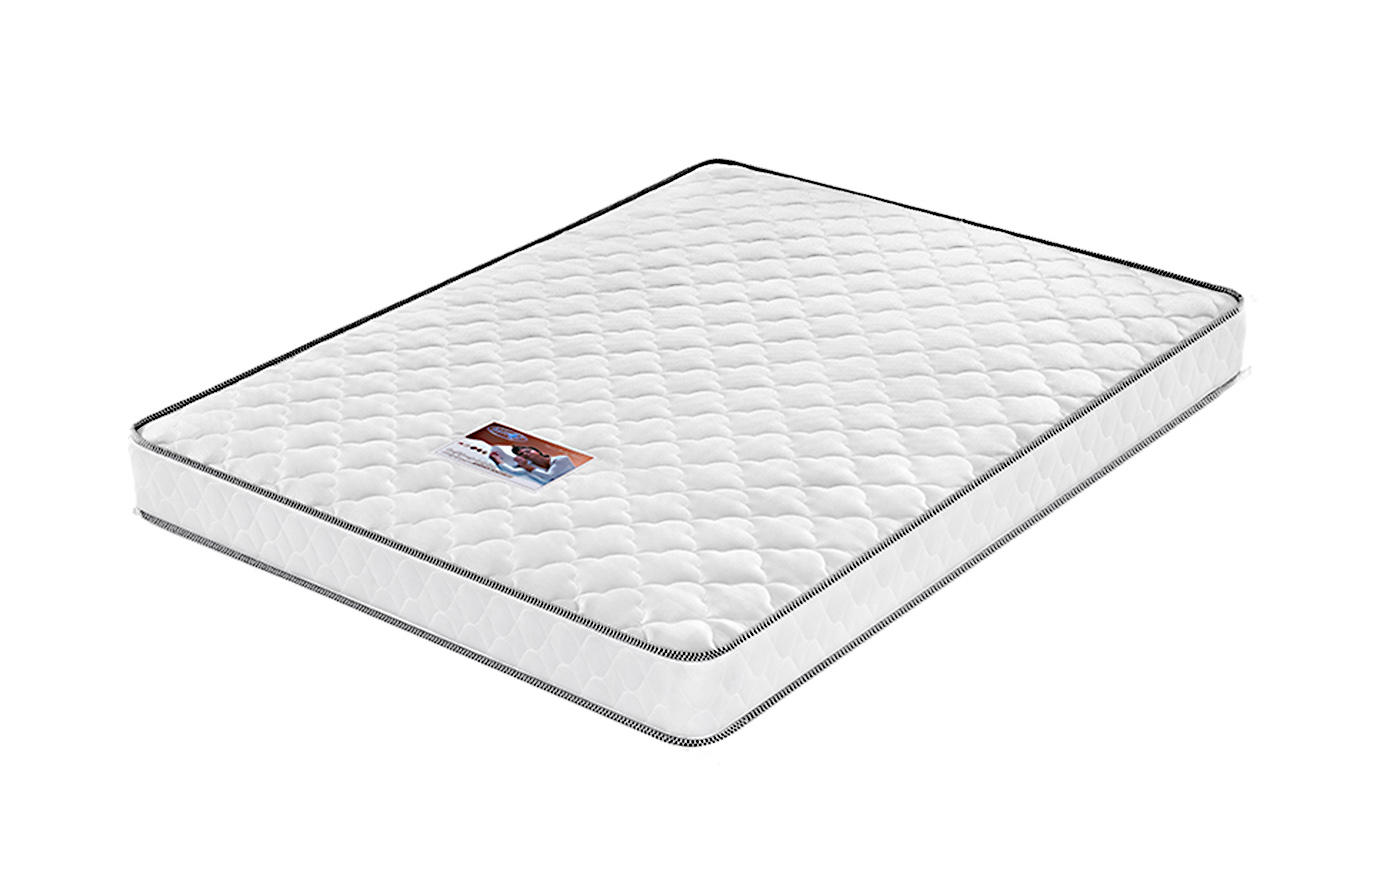 Synwin customized bonnell mattress 12 years experience firm sound sleep-1